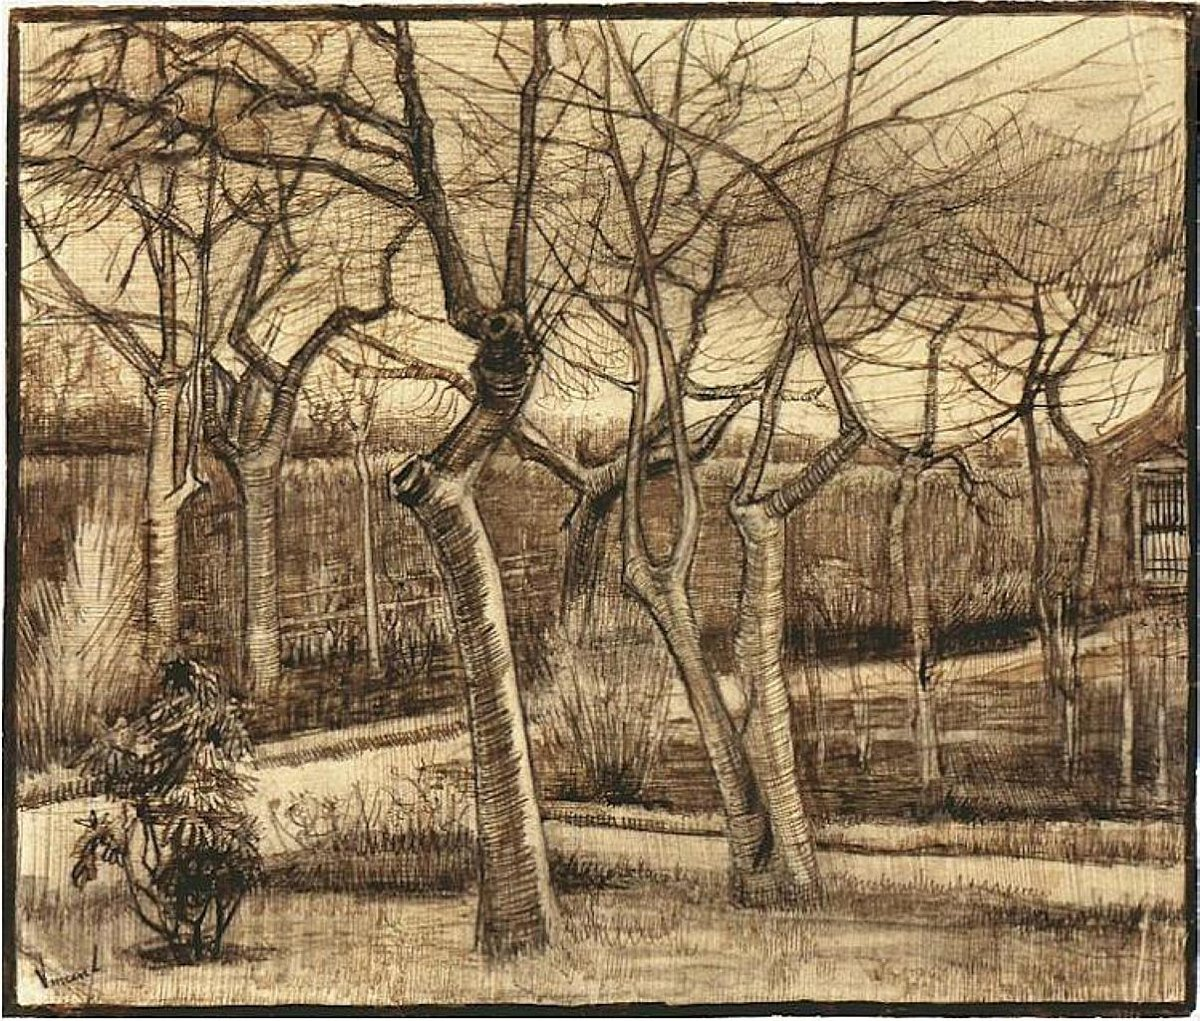 Replying to @vangoghartist: The Vicarage Garden, 1884 #vangogh #vincentvangogh